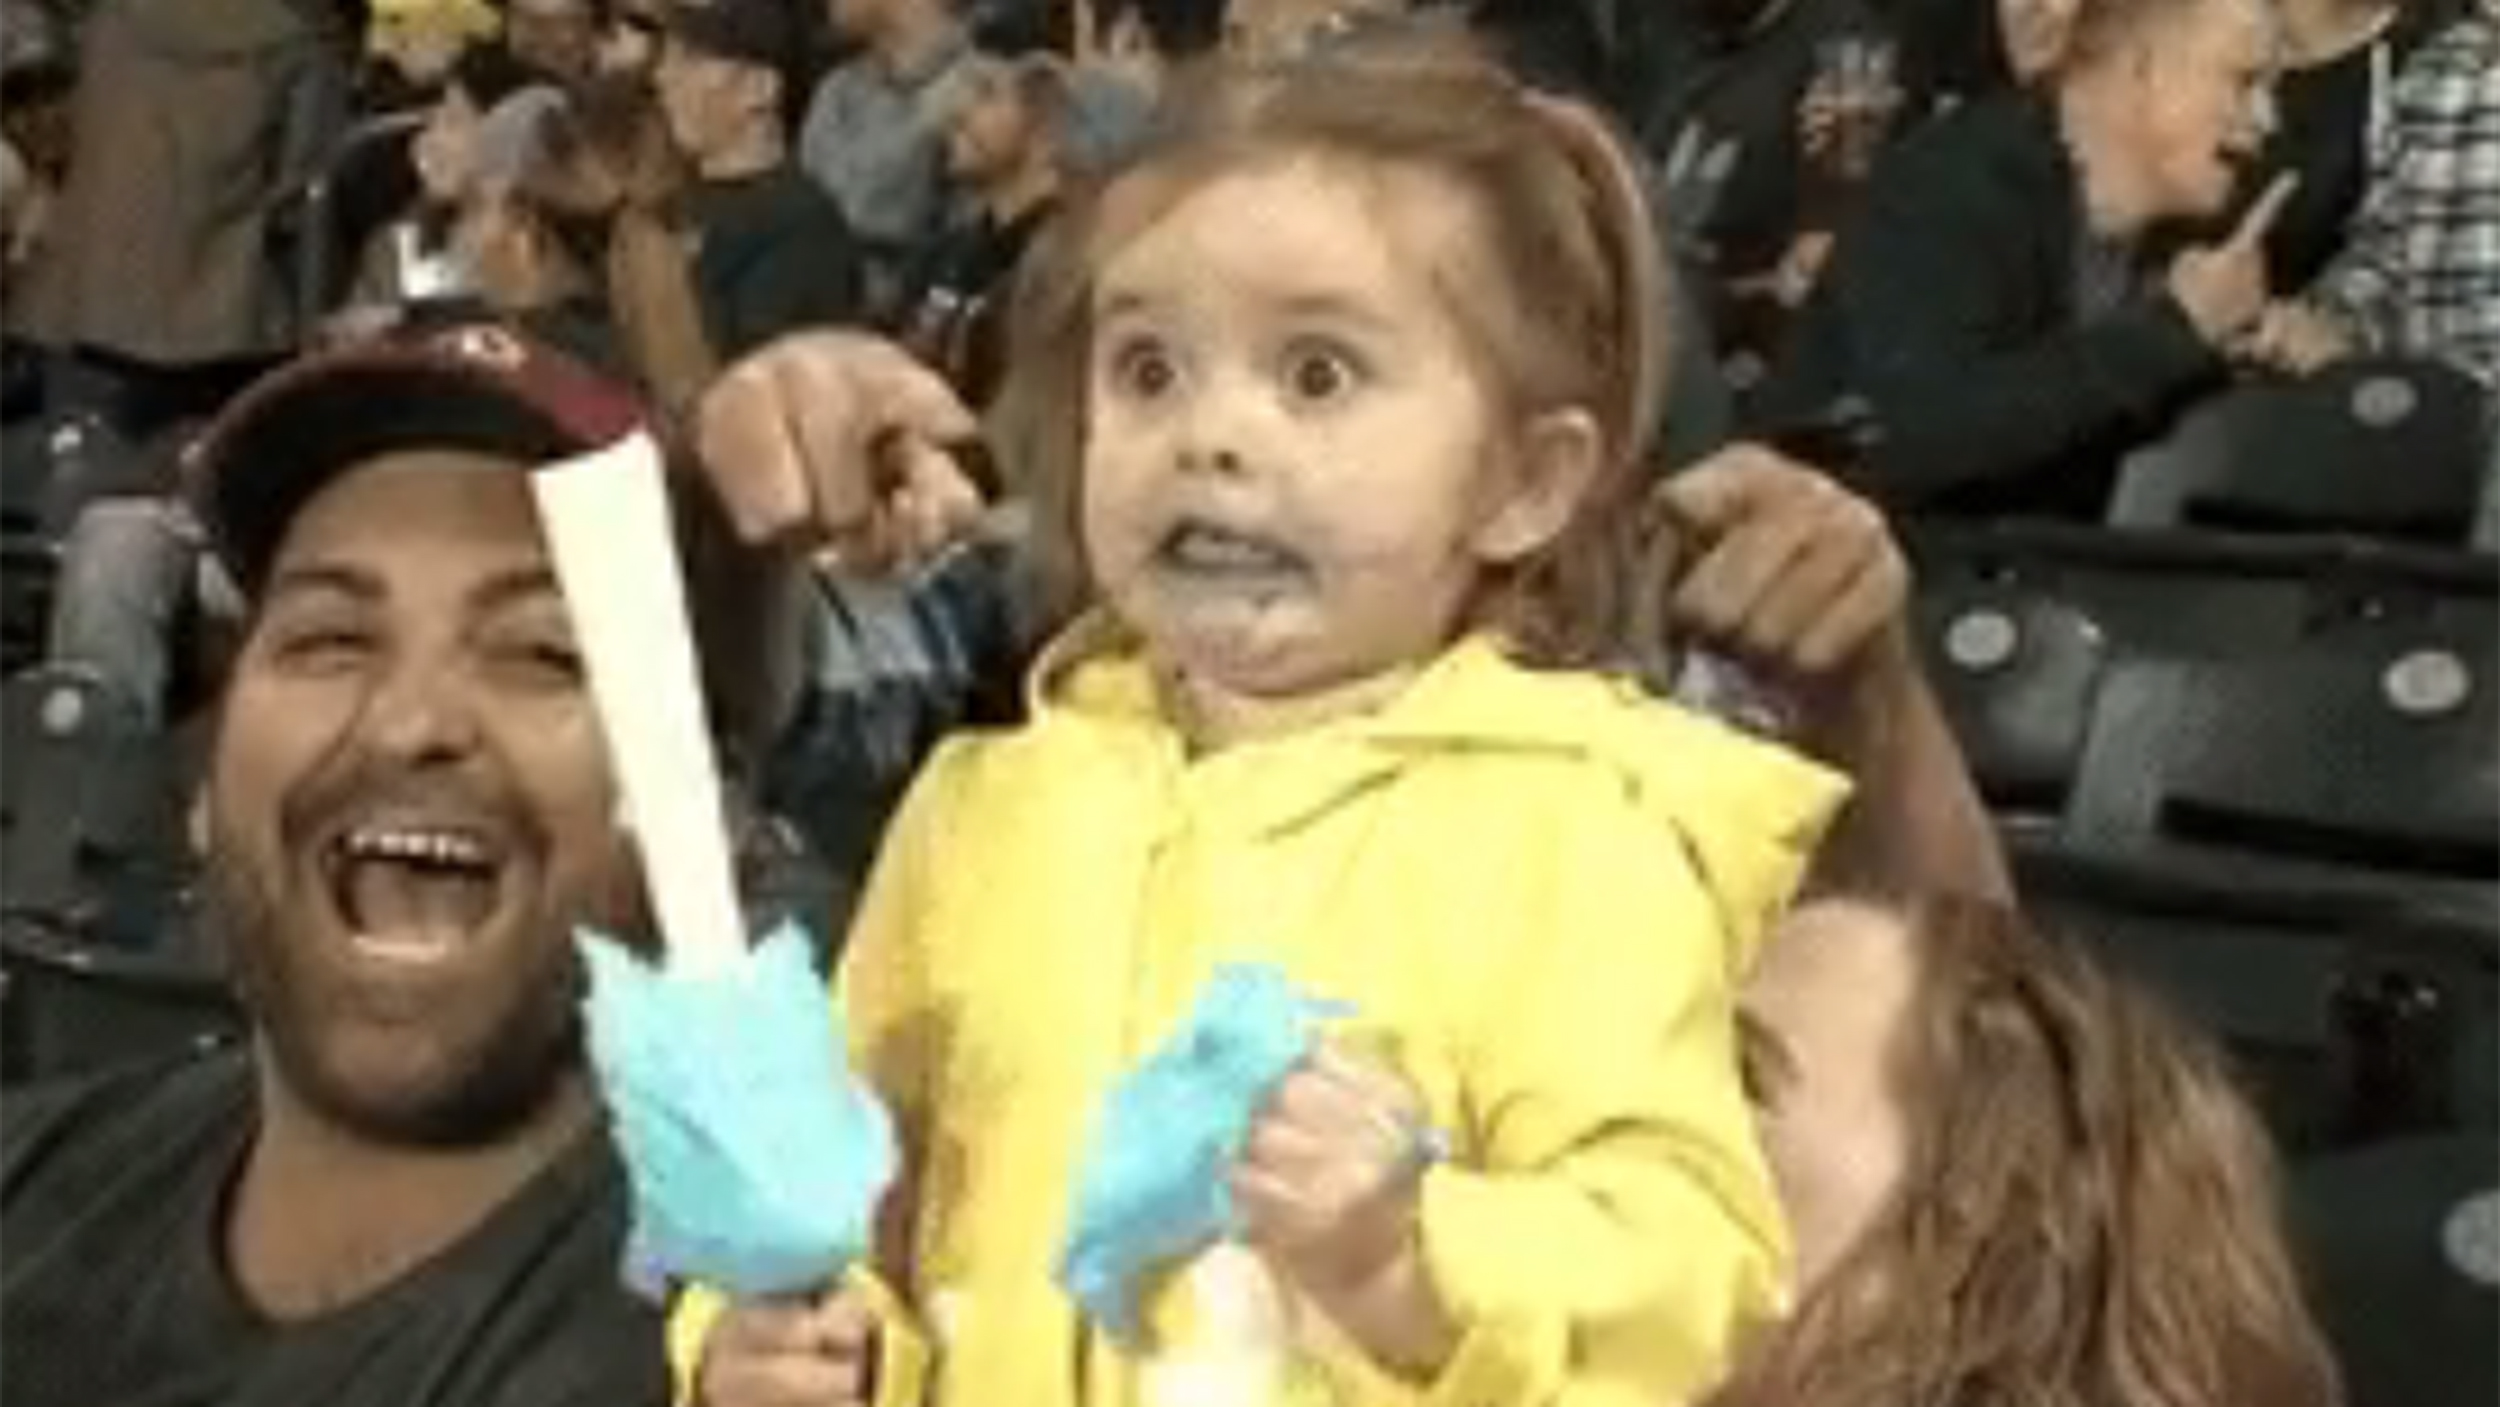 Watch this adorable little girl freak out on cotton candy ...